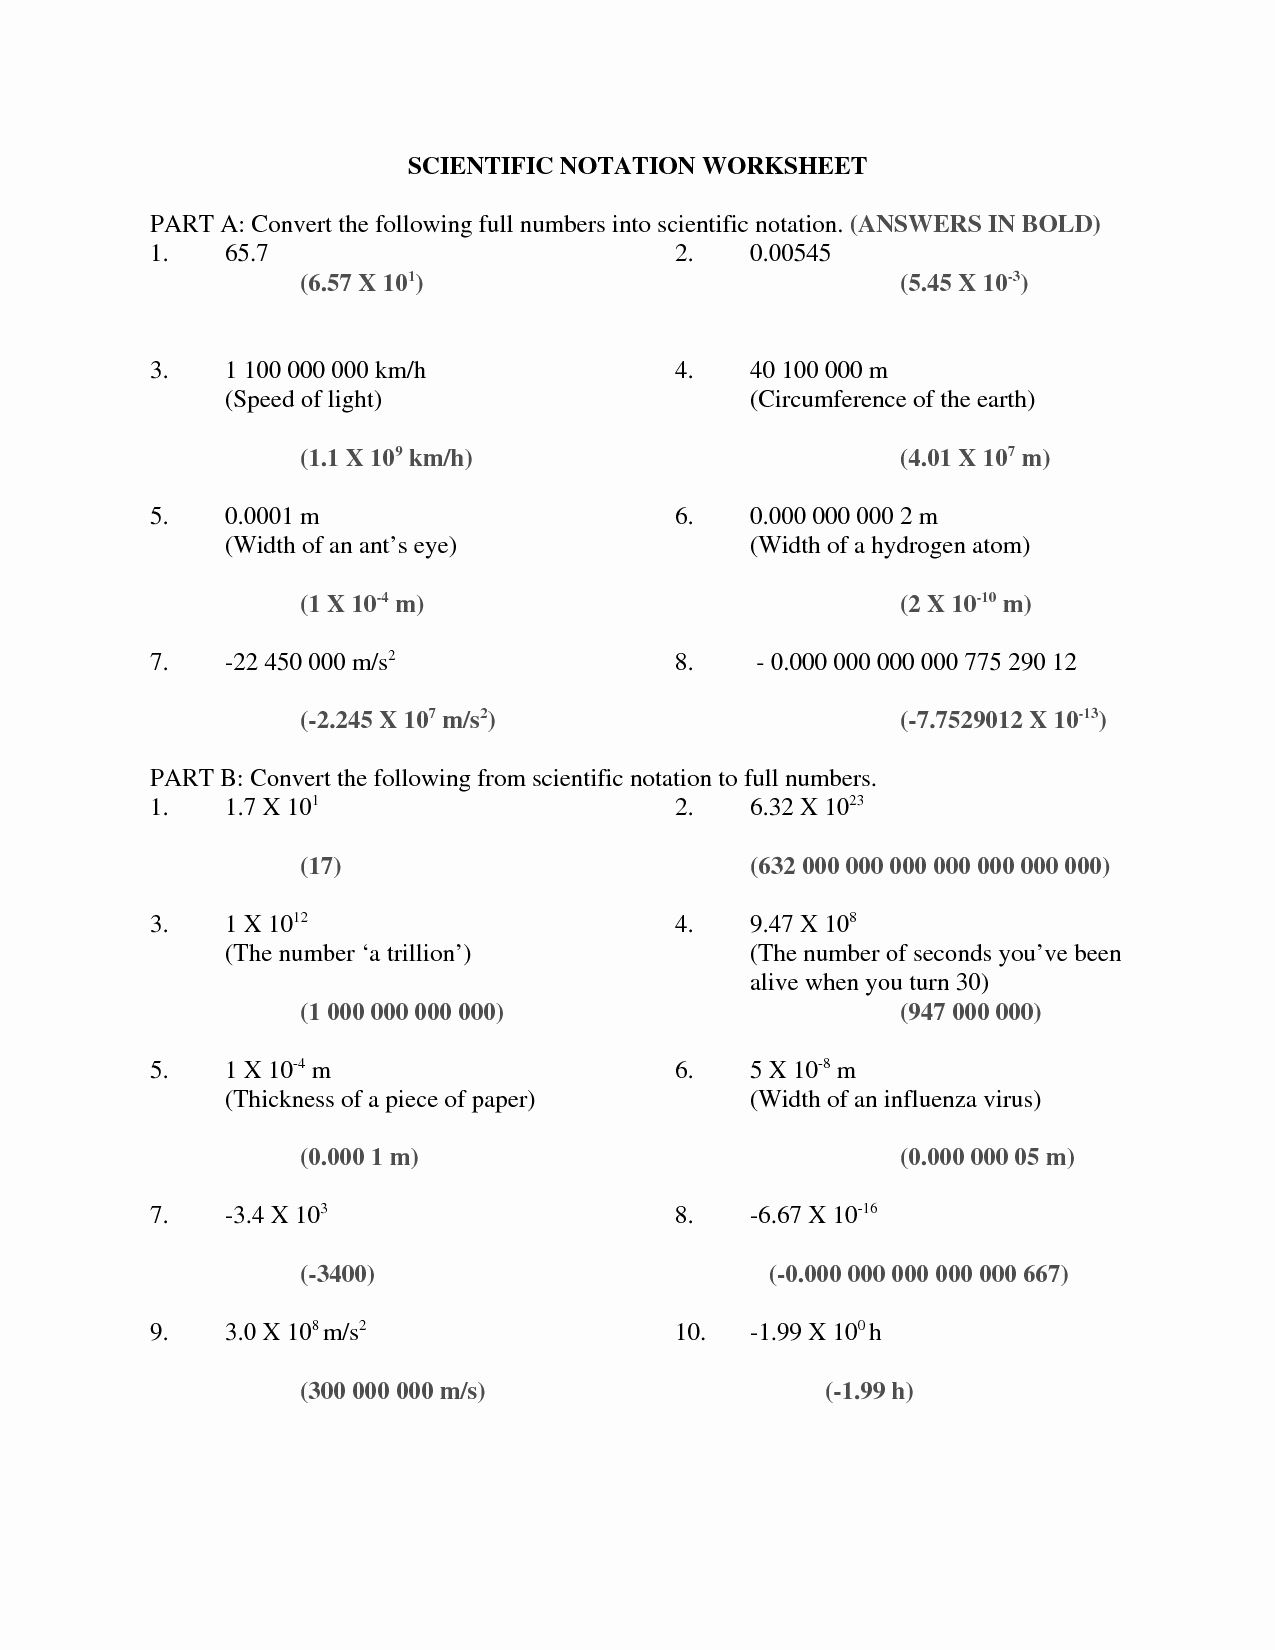 Scientific Notation Worksheet Answer Key Lovely 7 Best Of Speed Light Worksheet Waves Crest